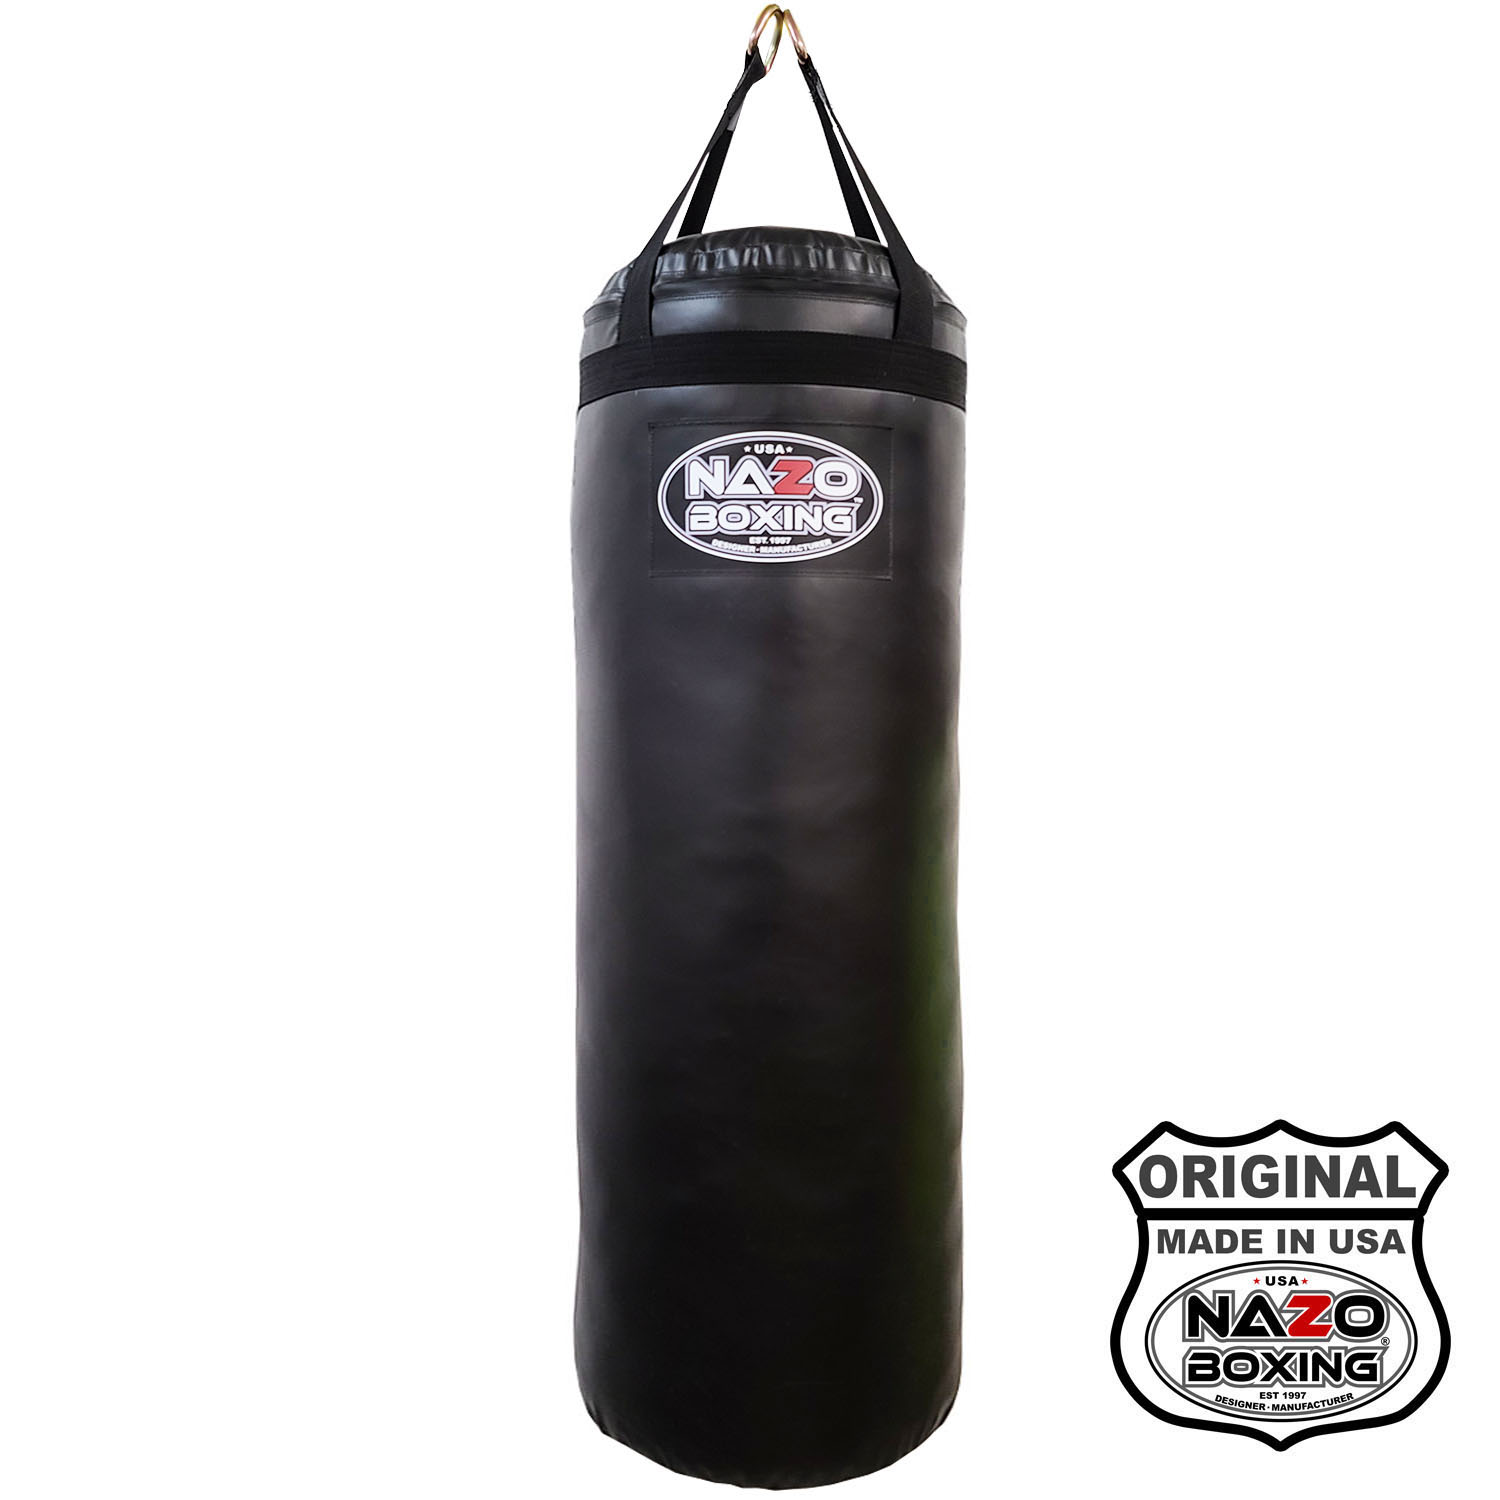 Punching bag Made In USA